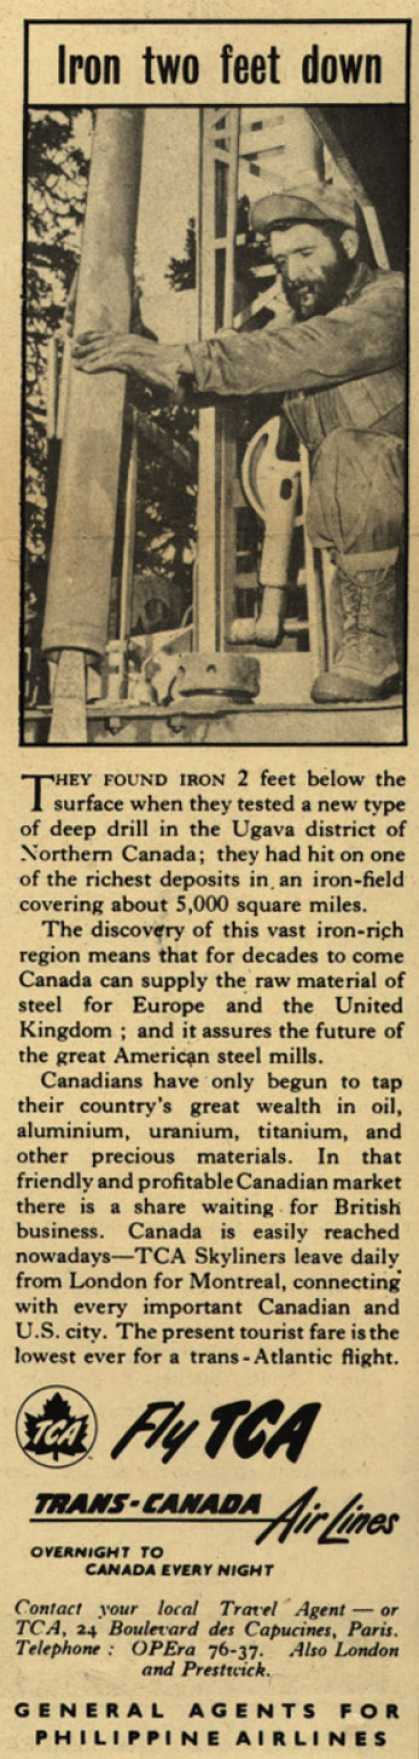 Trans-Canada Air Lines – Iron two feet down